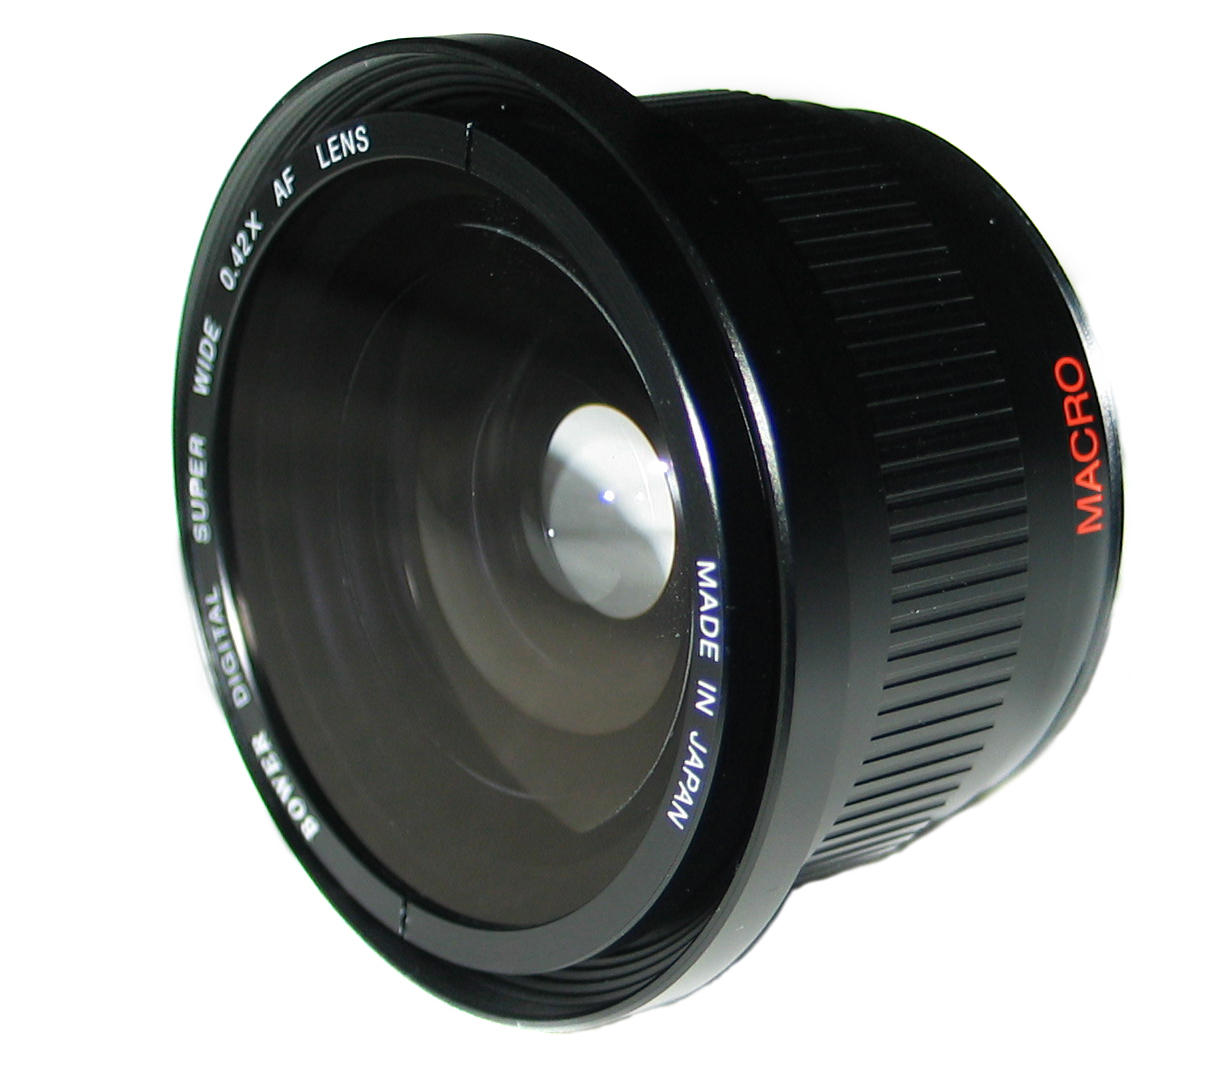 Ebay coupons for camera lenses